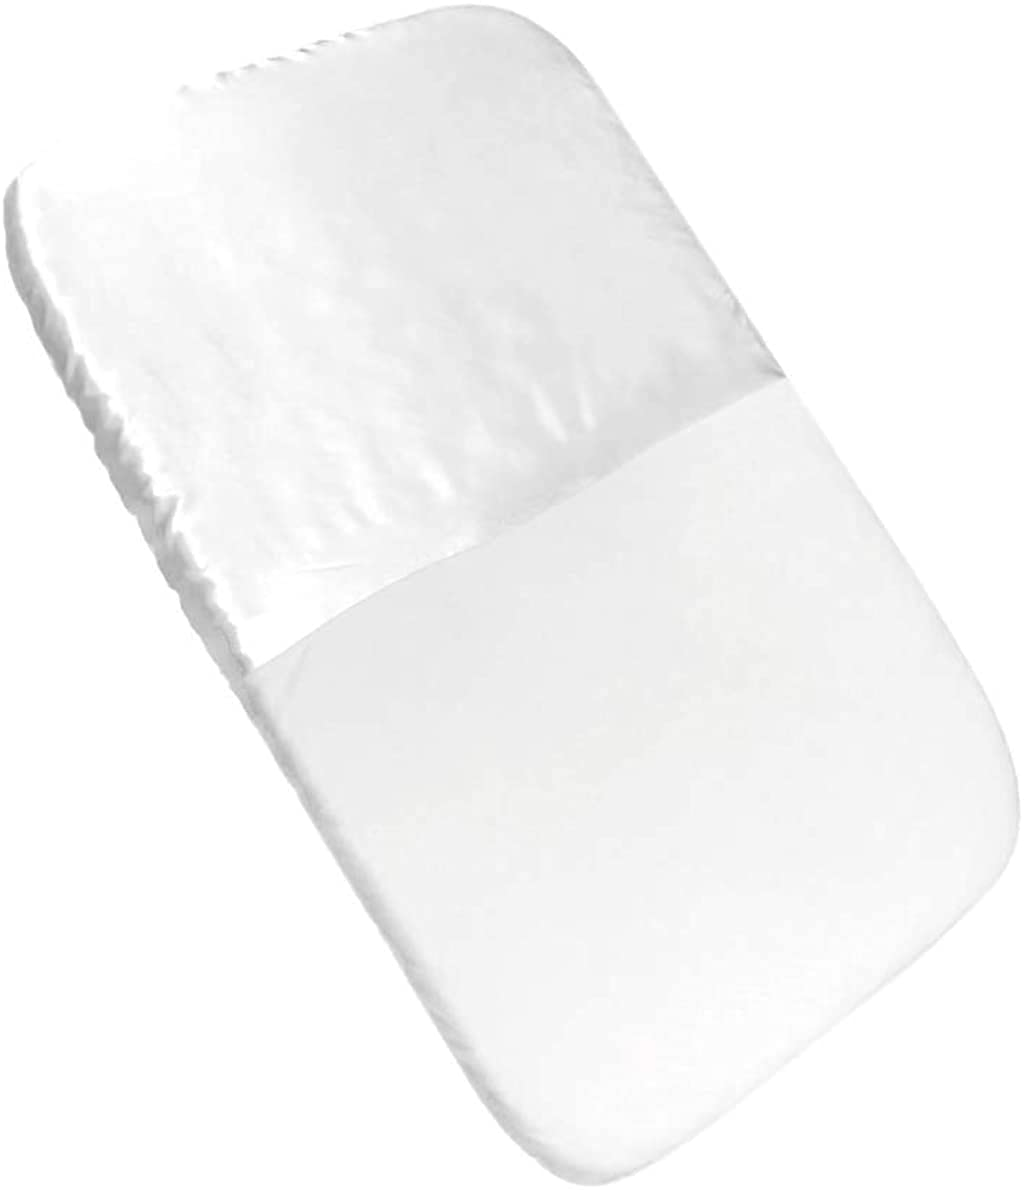 """Mane by Tim & Tam Satin & Organic Cotton Fitted Cradle Sheet - Protect Delicate Hair and Skin fits mattresses up to 36""""x18""""x4"""" (White)"""